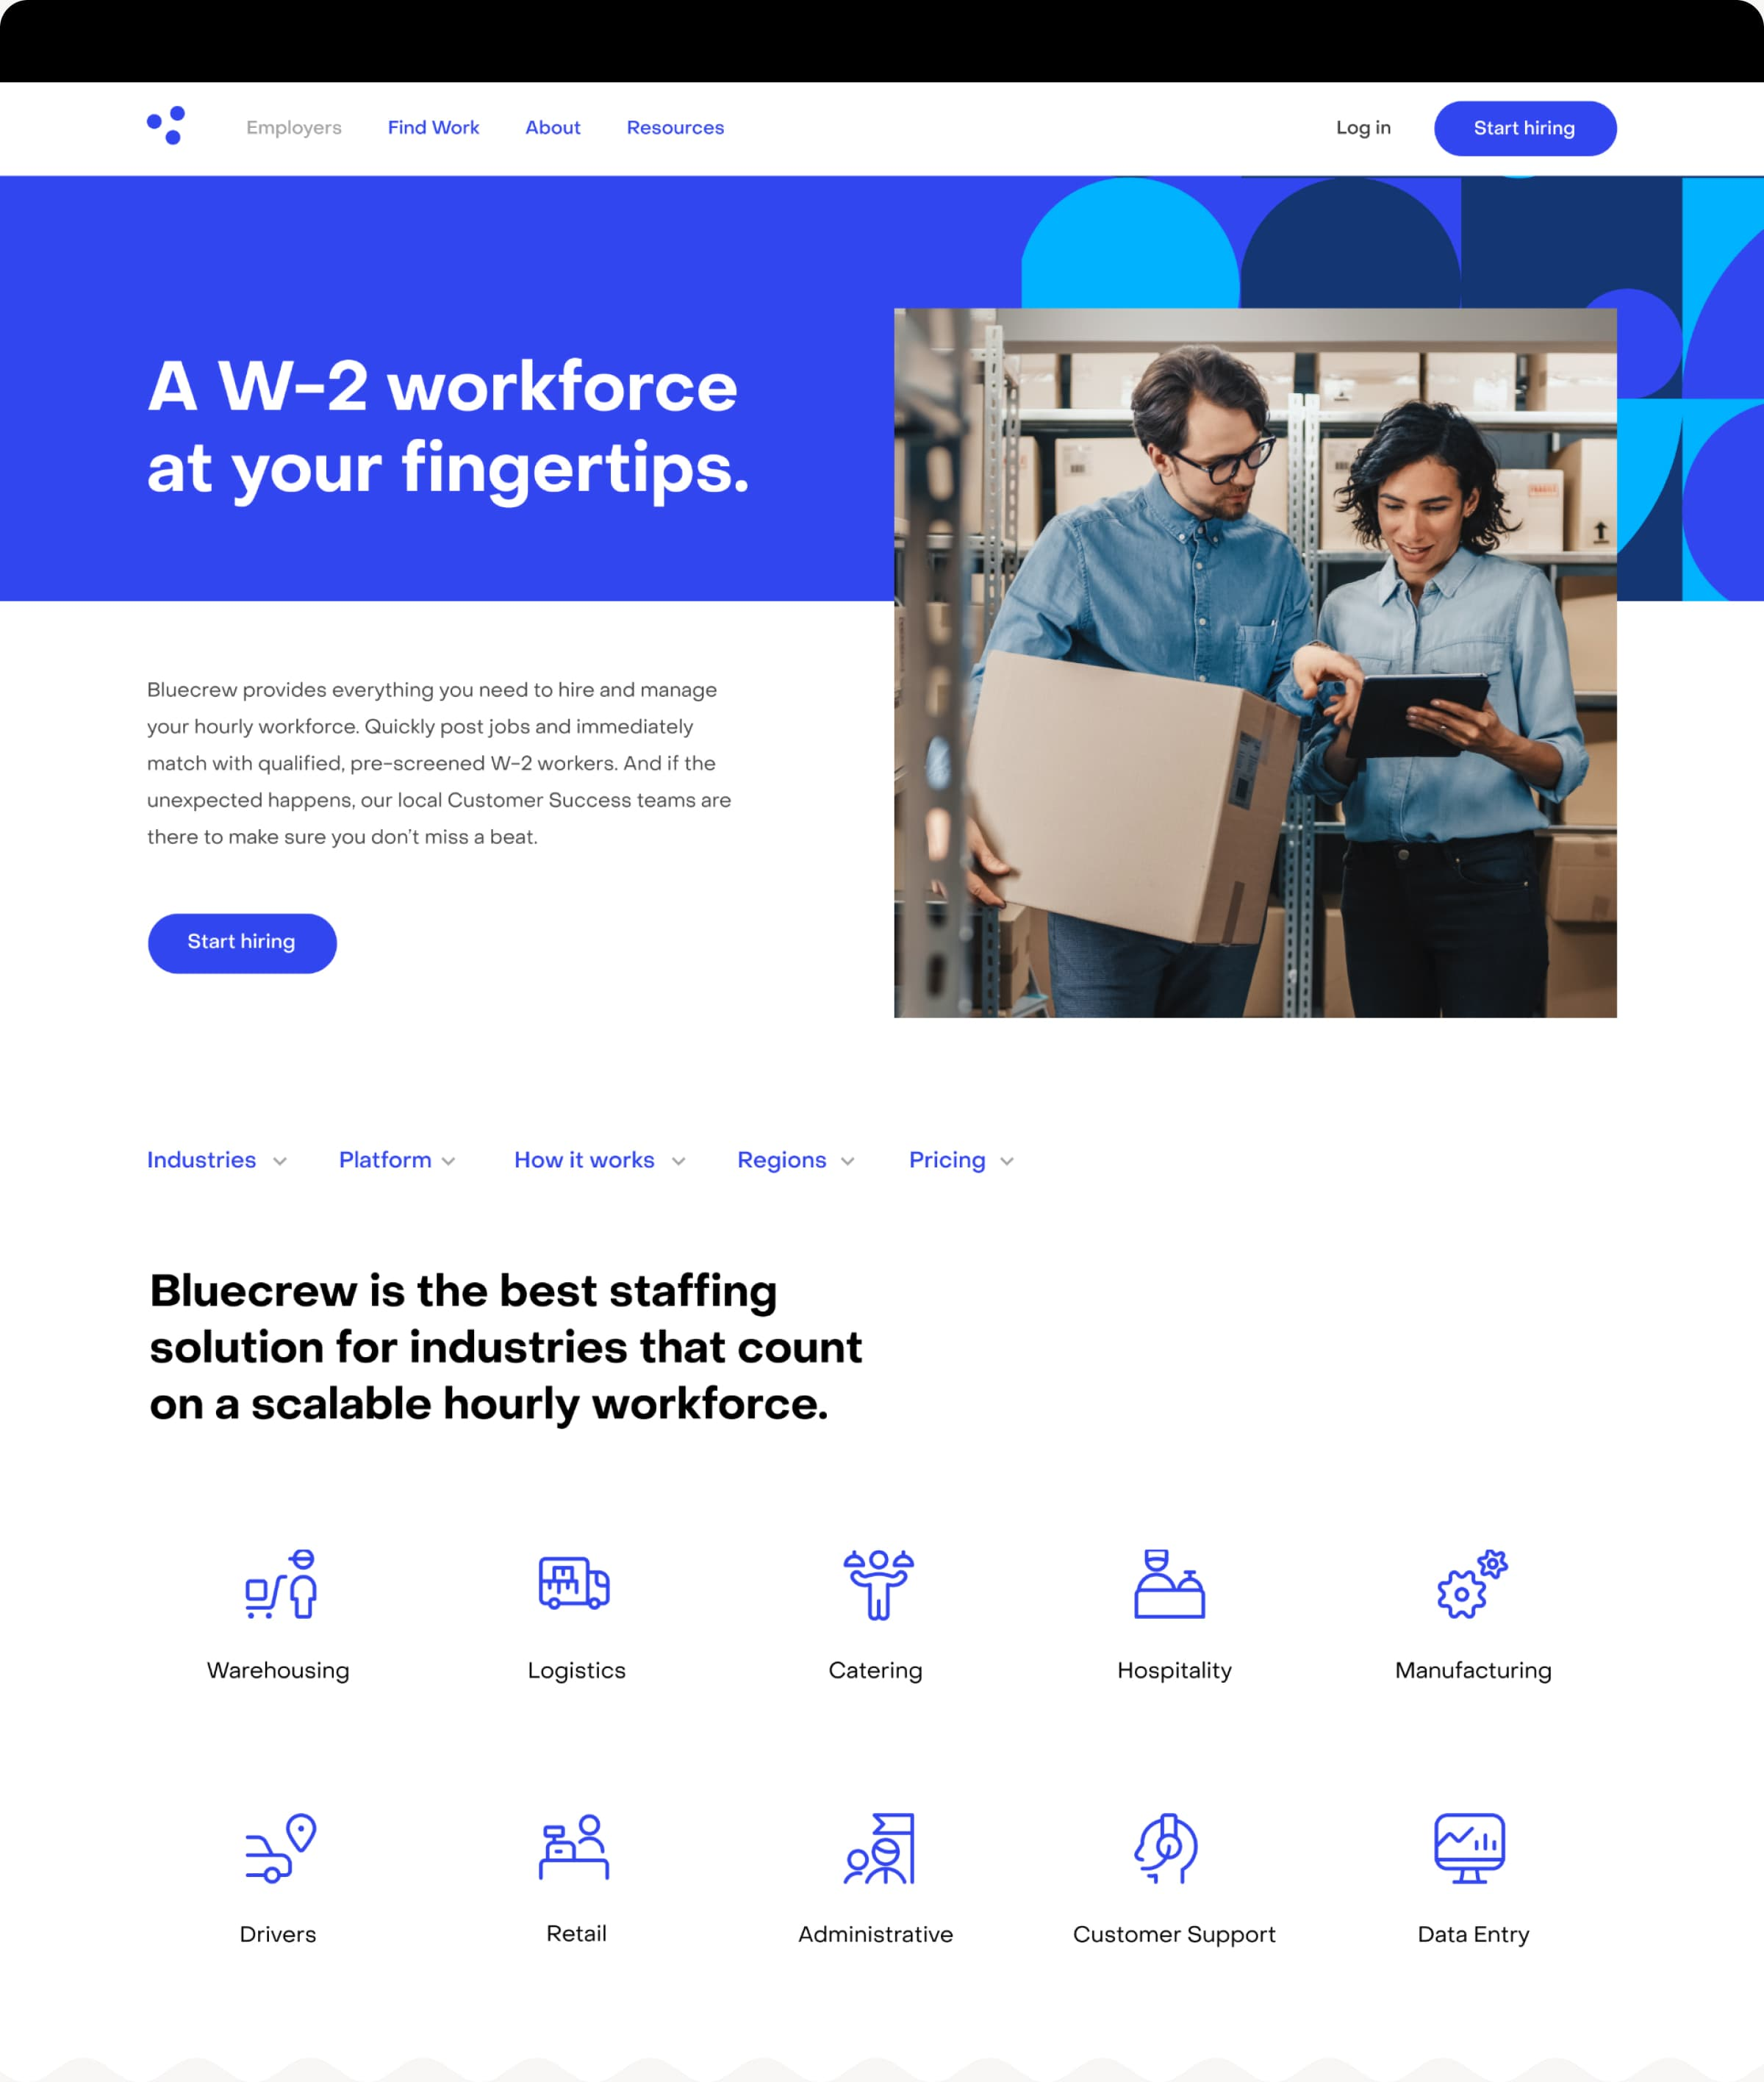 An image of the Product landing page from Bluecrew's website, featuring a hero photograph of two warehouse workers collaborating, and 10 icons showing the range of industries that Bluecrew services.